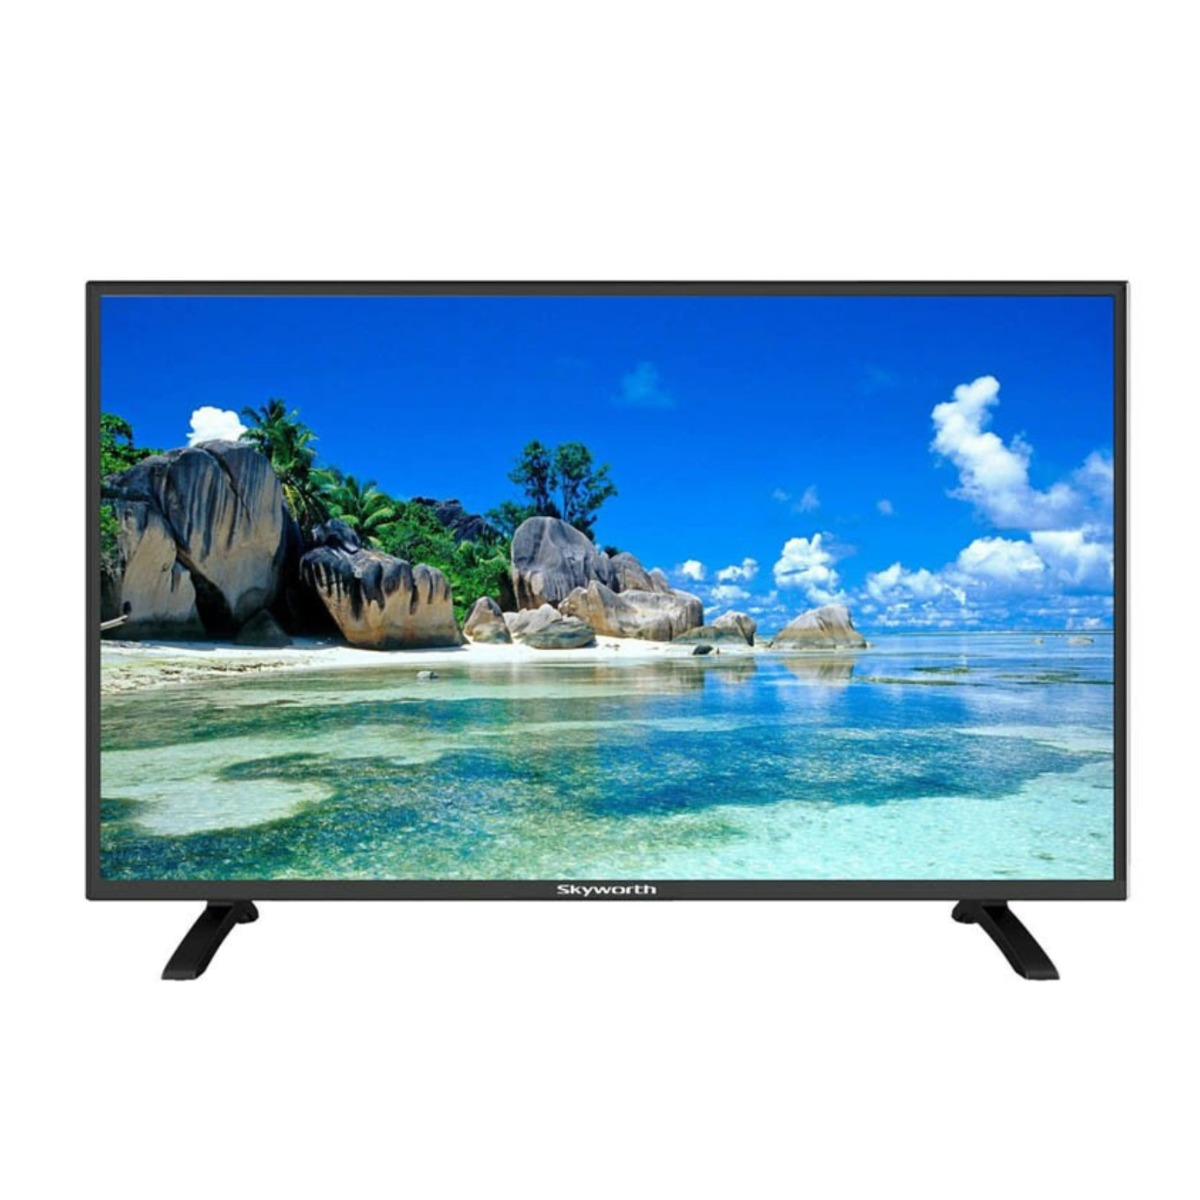 SKYWORTH 32 Inch HD LED DIGITAL TV - Black